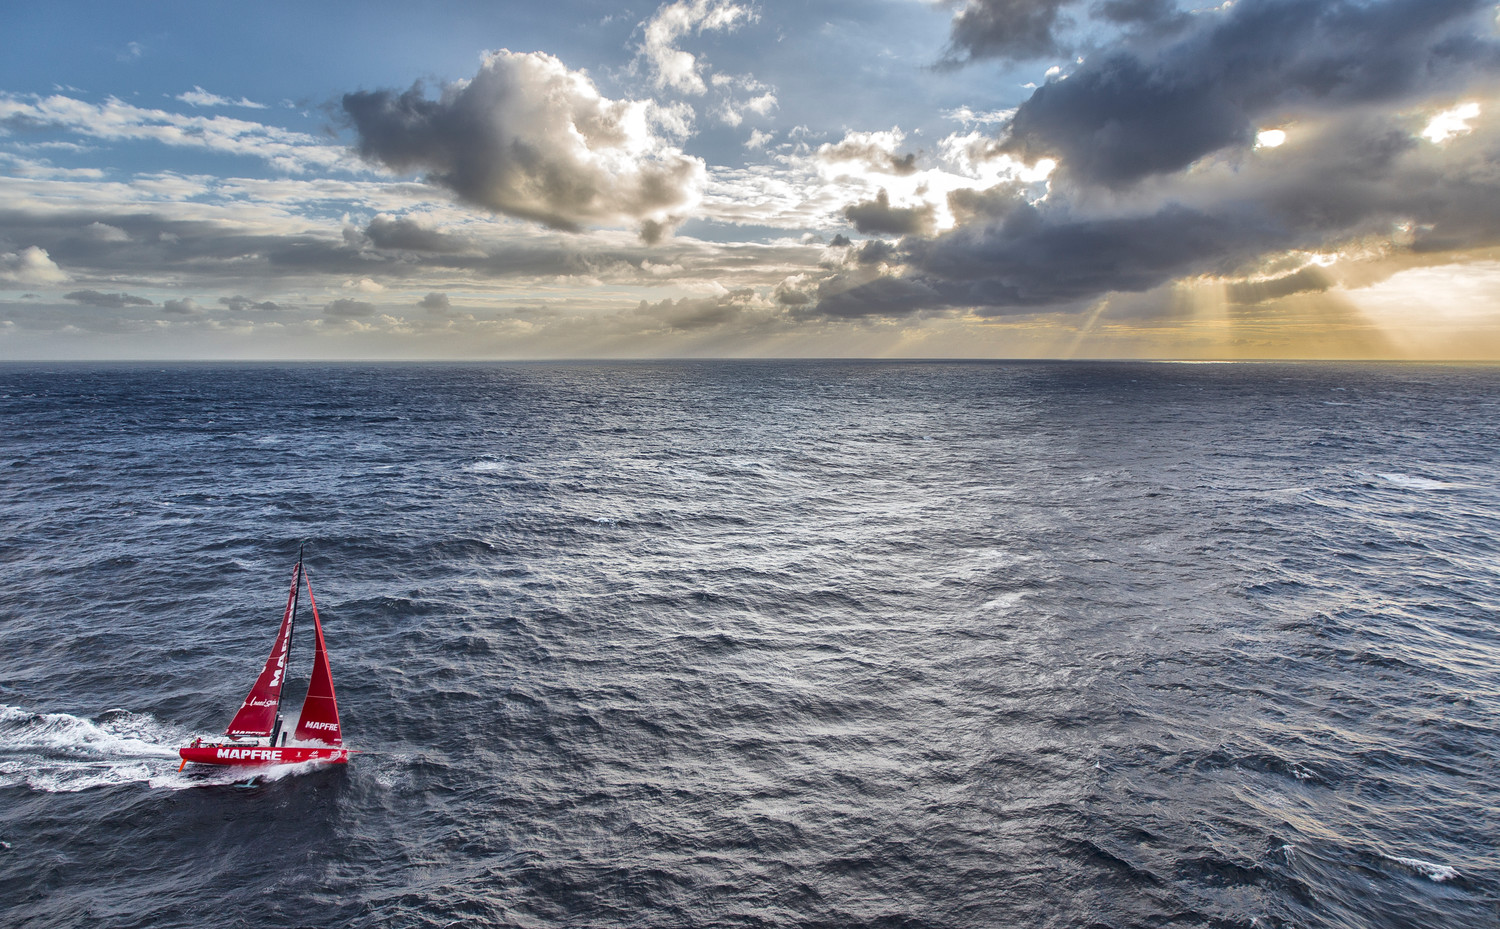 March 19, 2015. The boats tackle steep and angry seas as they pass East Cape, the eastern-most point of New Zealand. Ainhoa Sanchez / Volvo Ocean Race